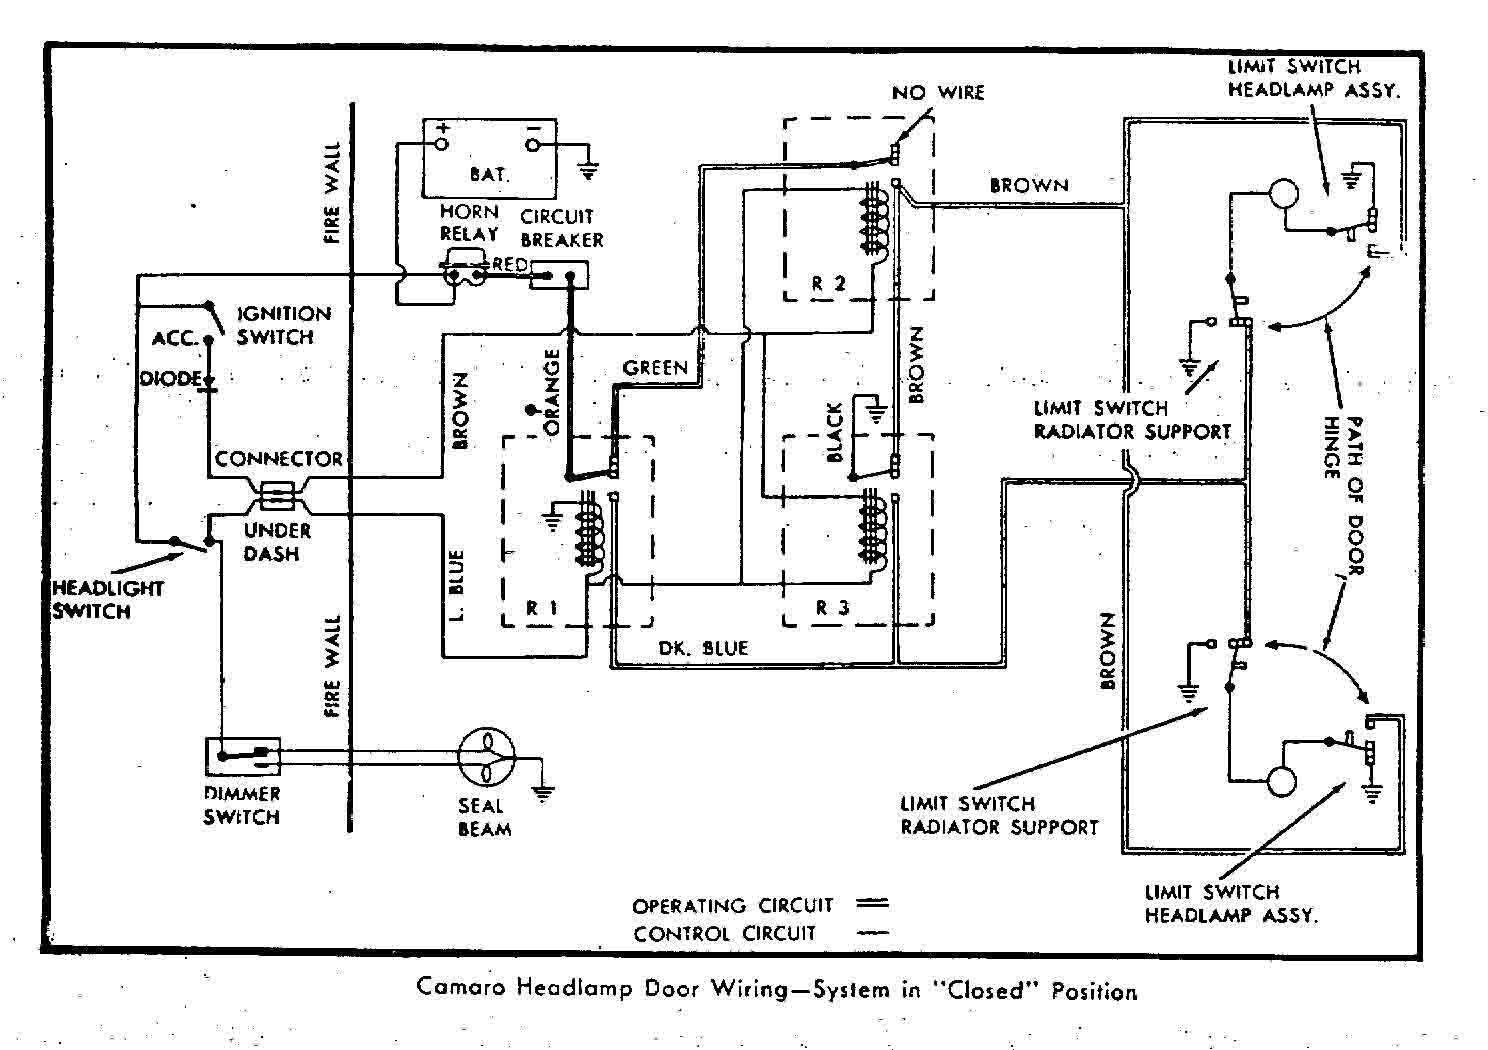 1968 ford headlight switch wiring diagram blue star package ac mustang convertible top